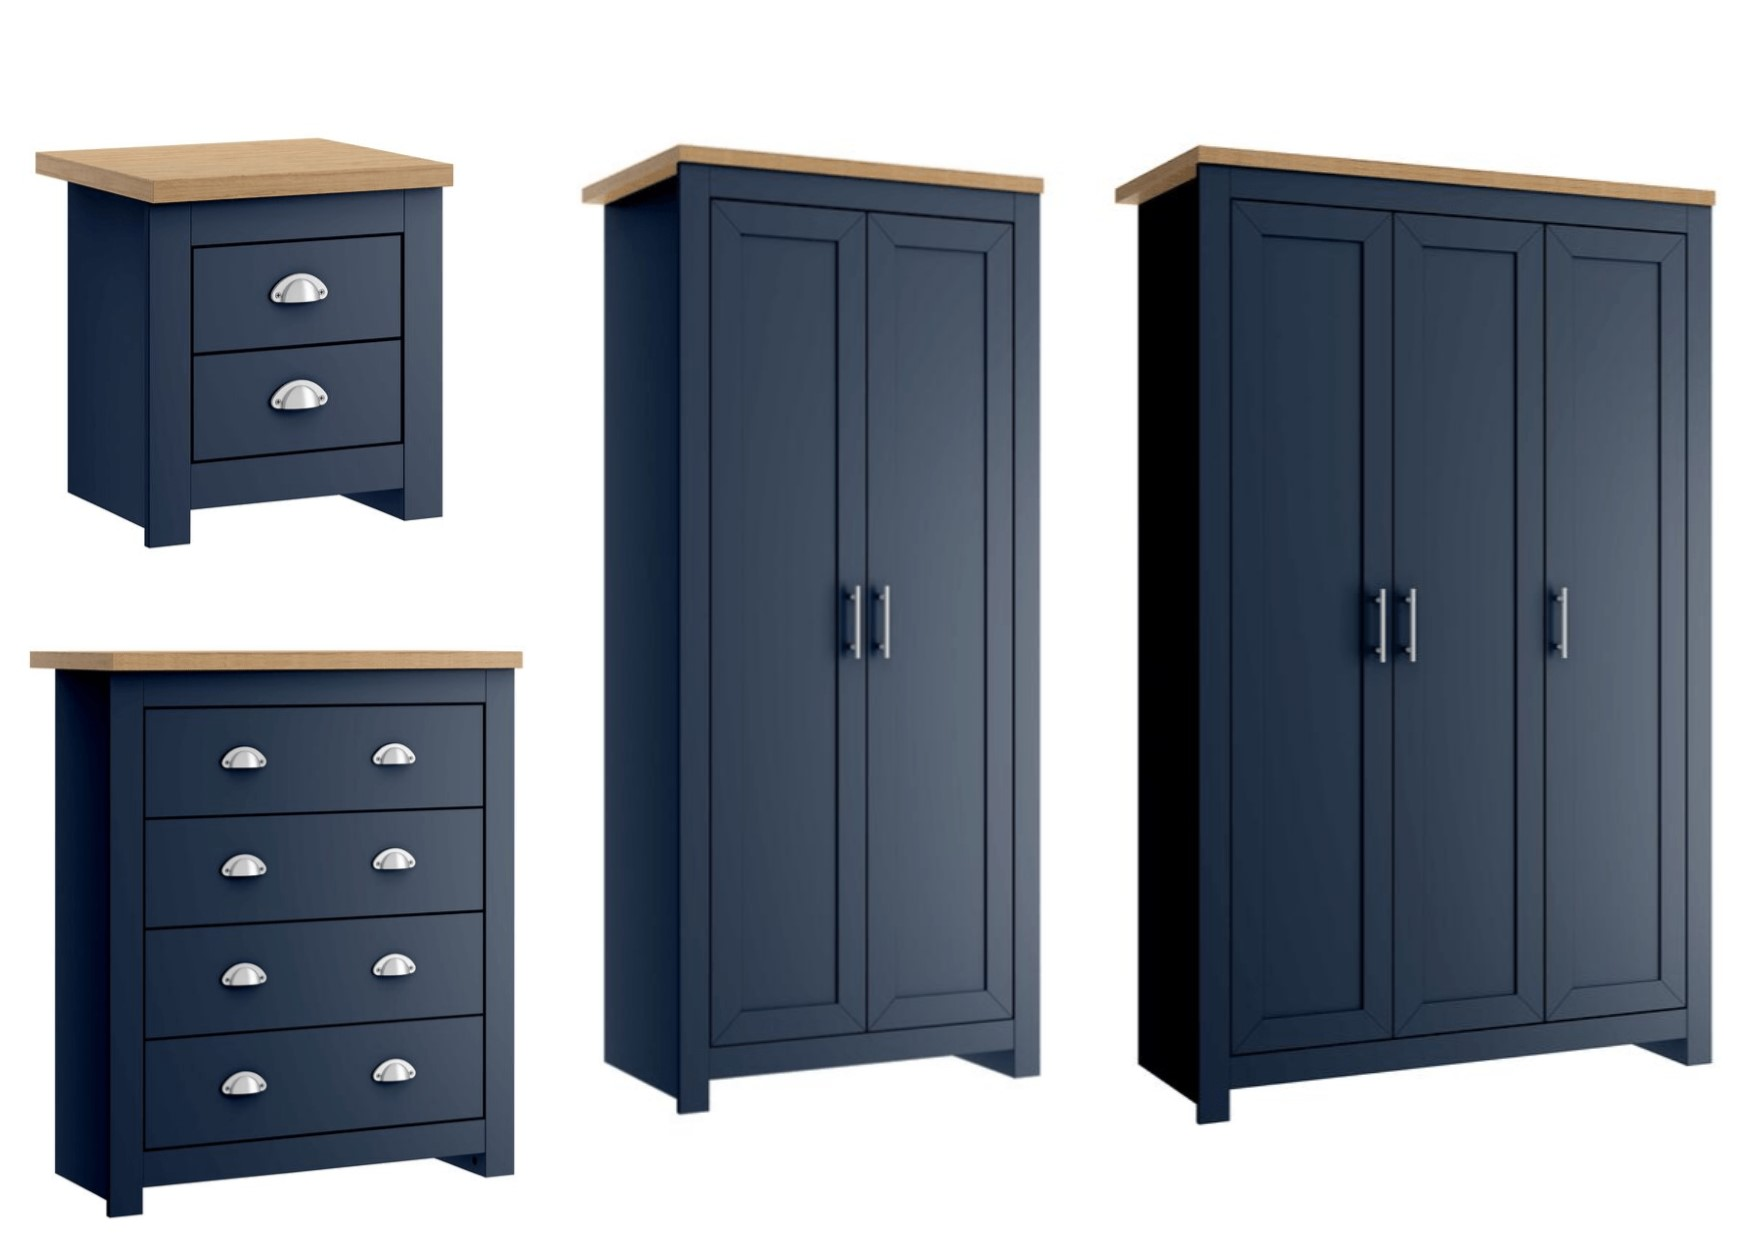 Birlea Winchester Bedroom Furniture Navy Blue Oak Tops Satin Silver Handles Ebay